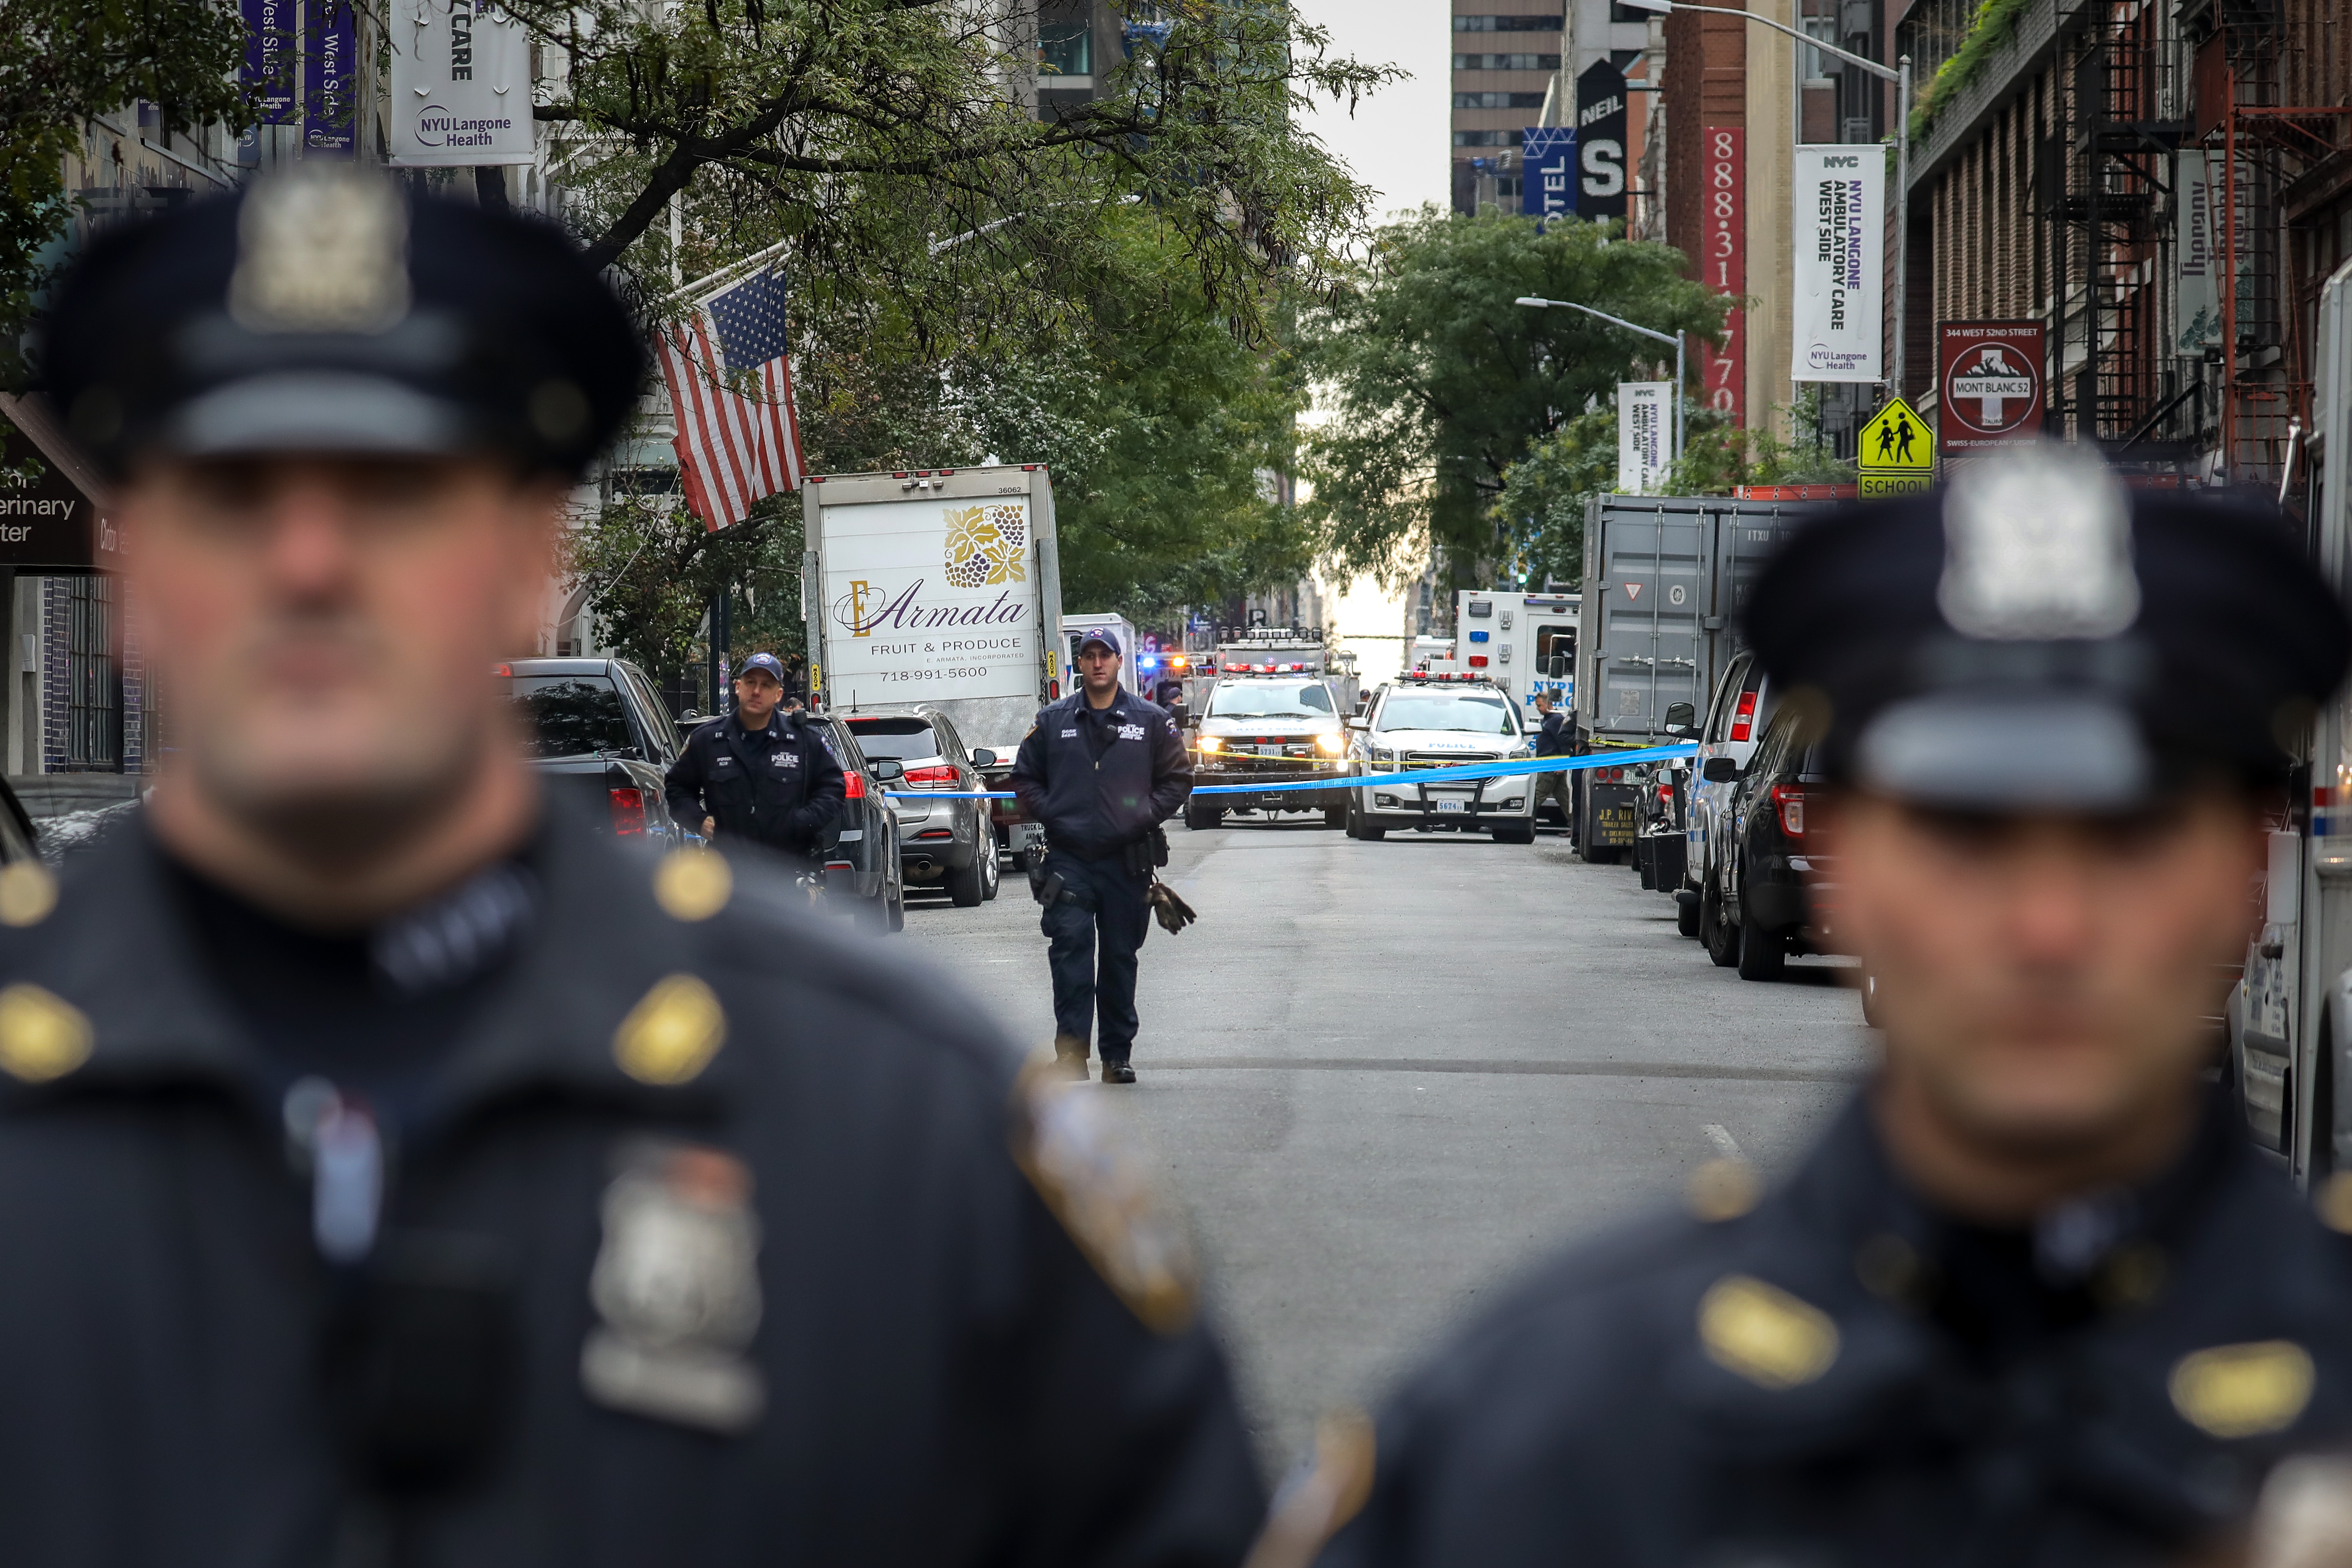 NYPD officials tighten security around mosques across Manhattan, New York City in wake of New York City terror attacks. (Getty Images)